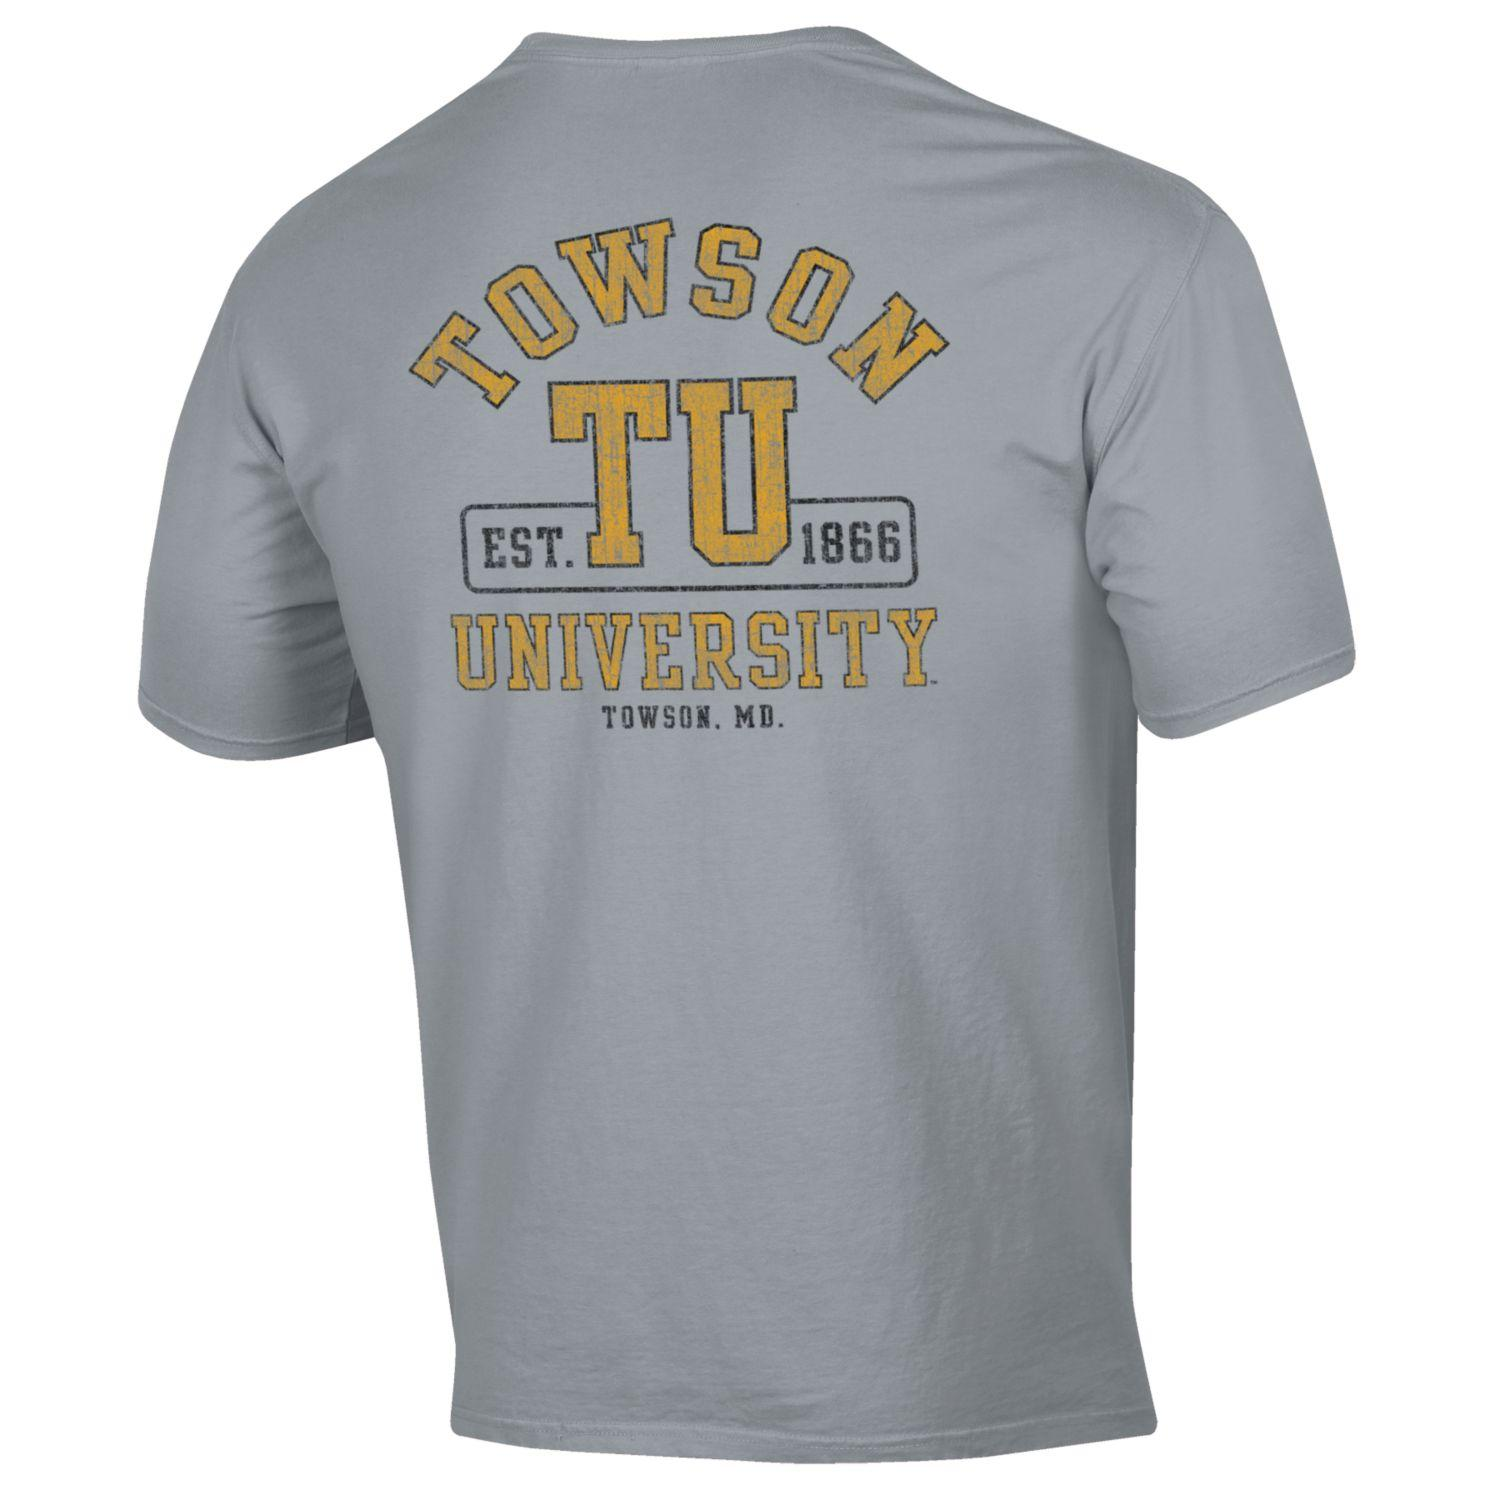 Image For COMFORT WASH TU 1866 TEE